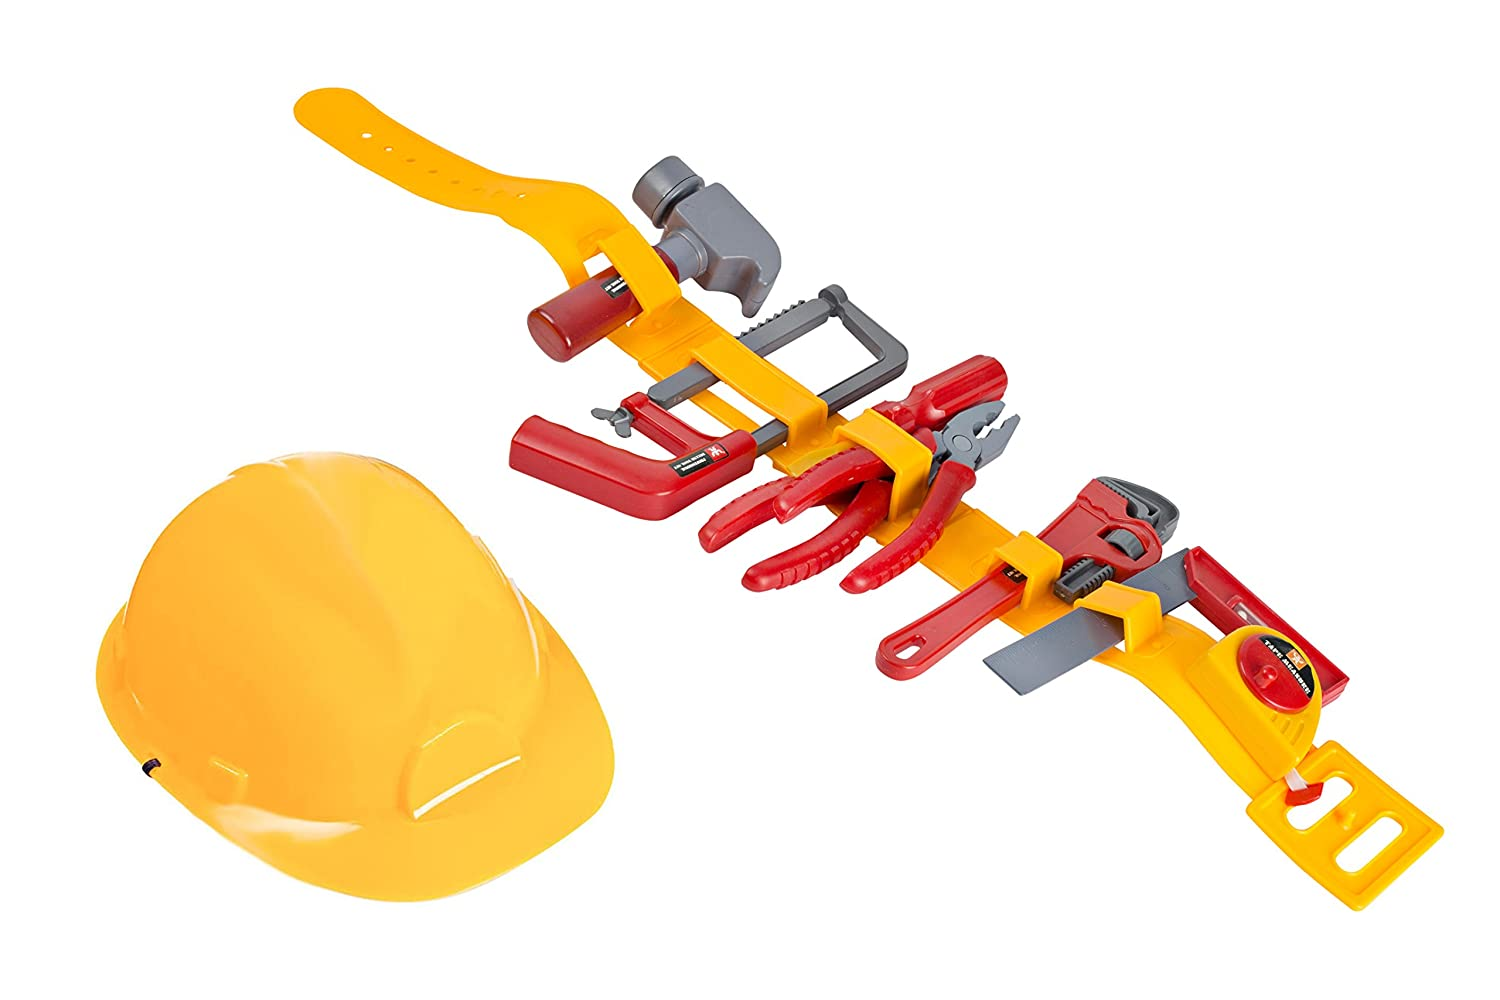 Kids Tool Toy - Pretend Play Childrens Tool Belt Set With Hard Hat, Tape Measure And Toy Hand Tools Big Mo's Toys